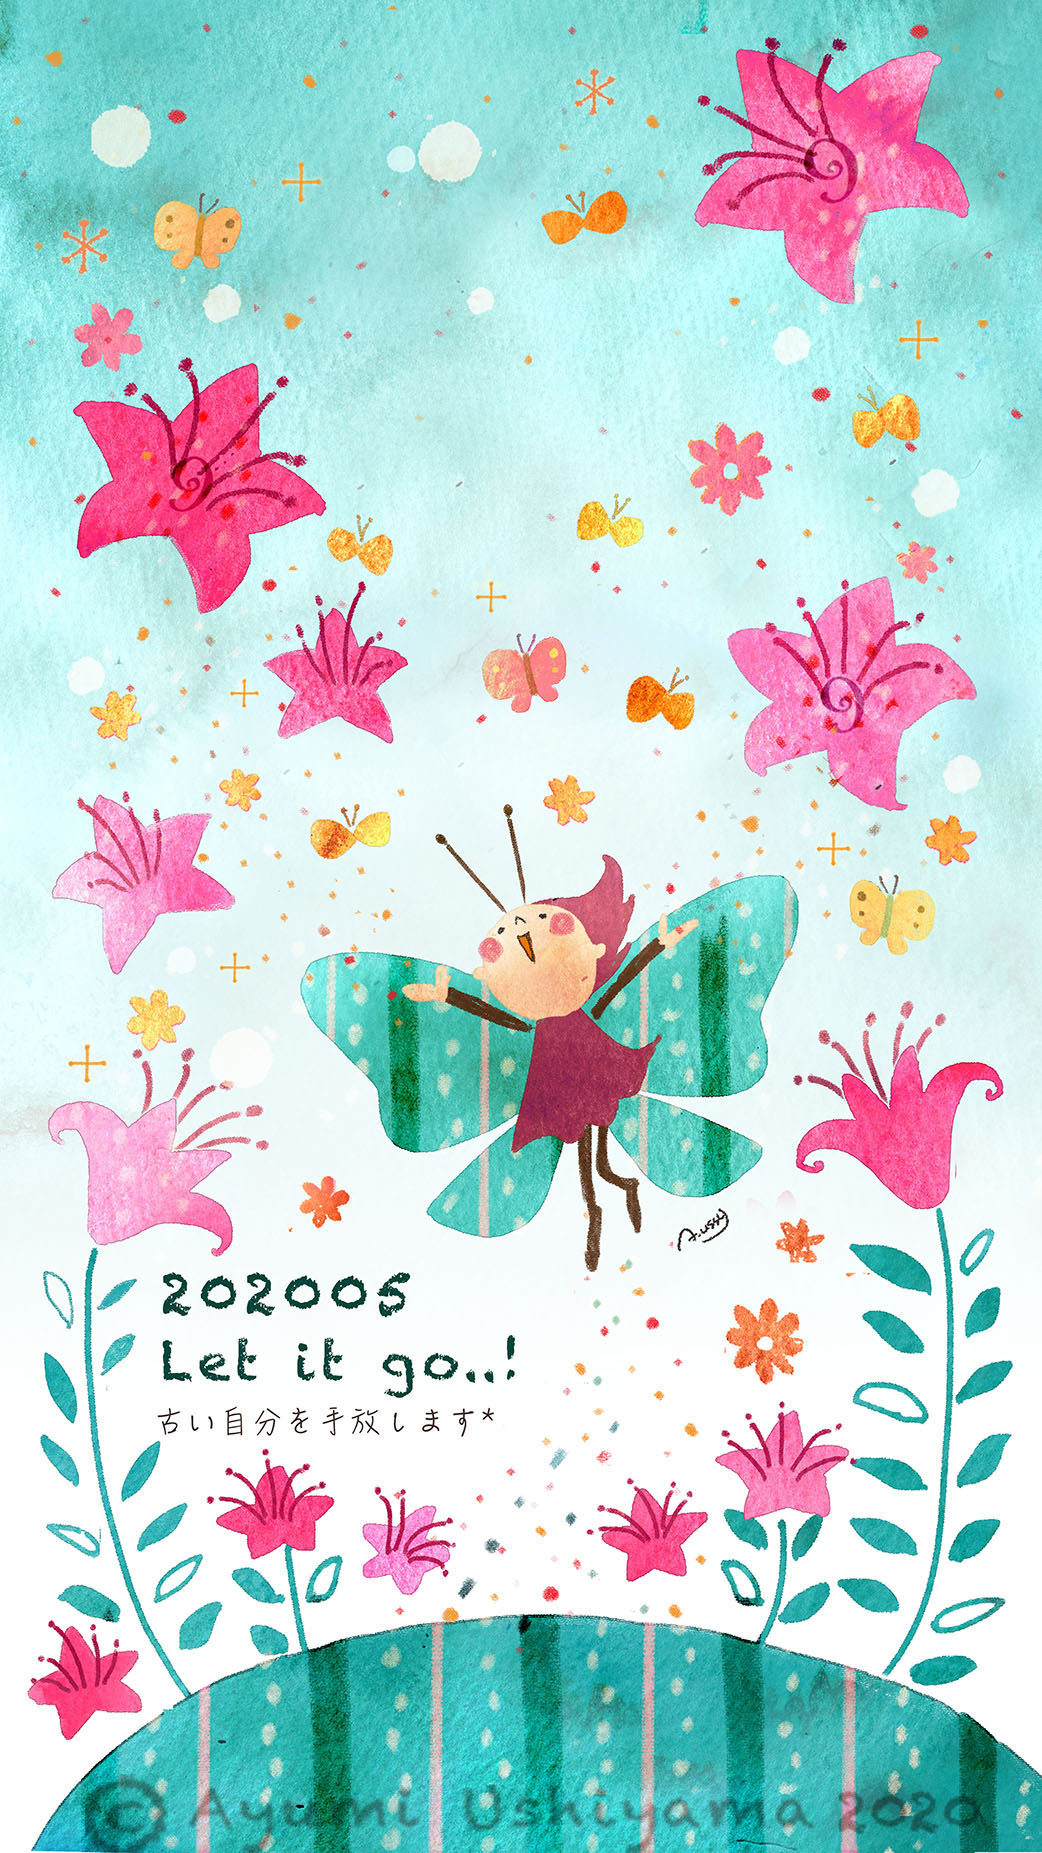 2020.05『Let it go..!』